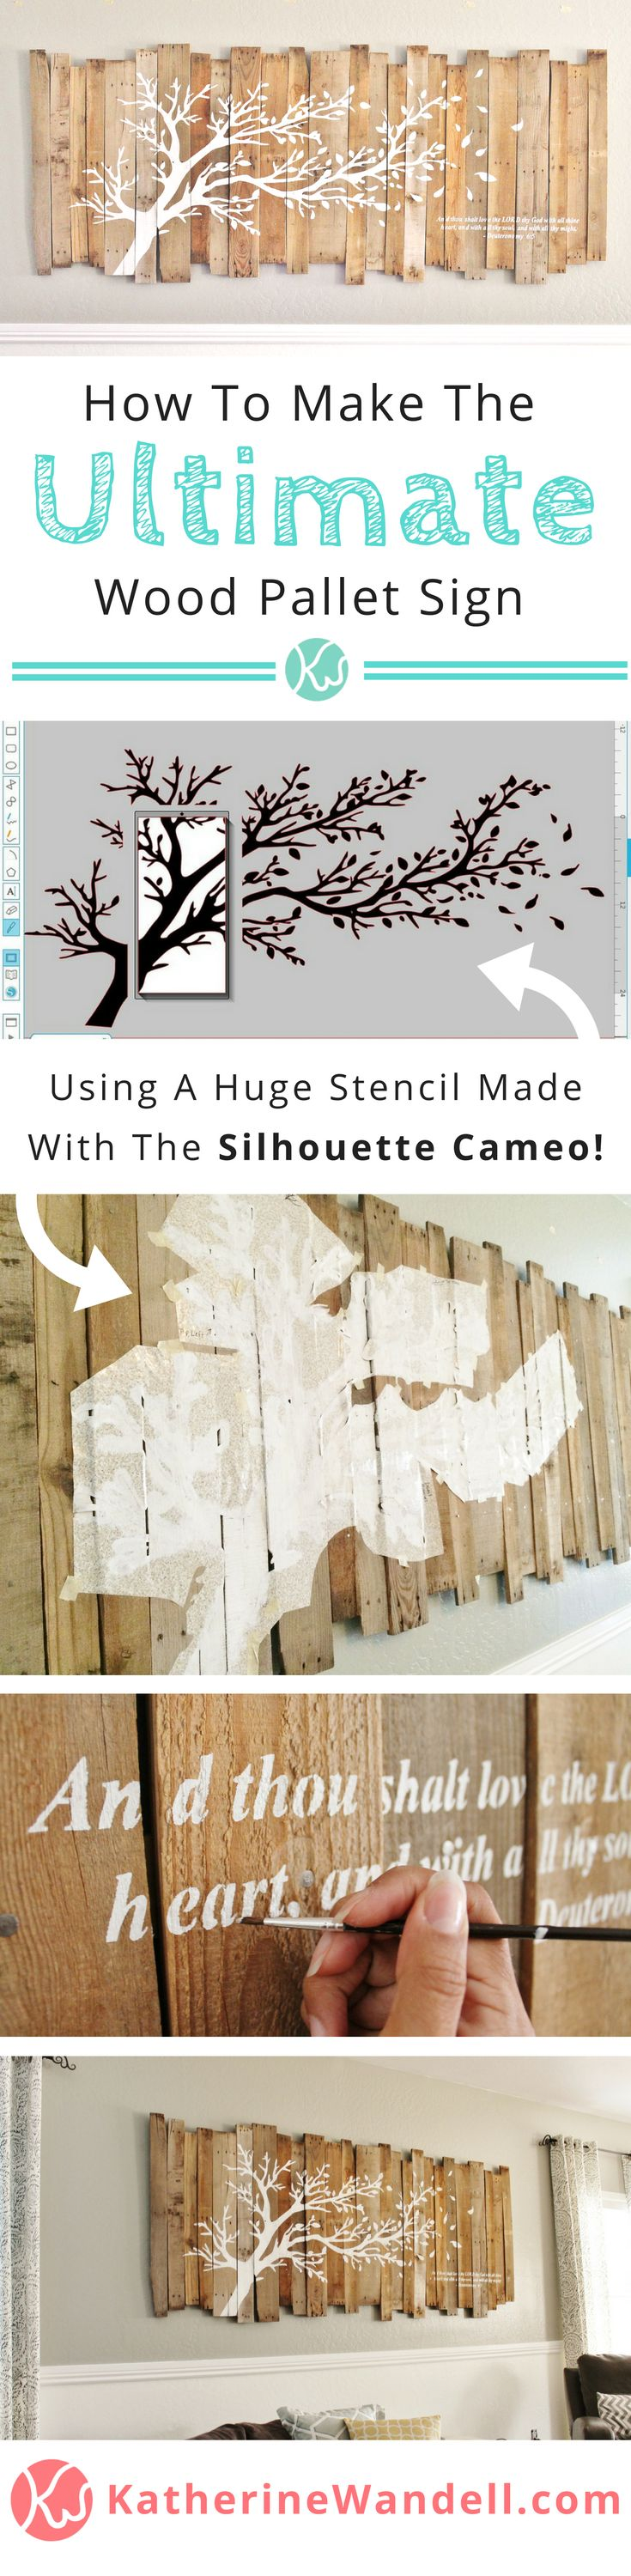 Awesome Tutorial On How To Make The Ultimate Pallet Sign! - - - - She has instructions on how to assemble the pallet sign and how she made a HUGE stencil with a silhouette cameo to paint the tree and bible verse on. Whats crazy is she didn't spend a penny on this project!